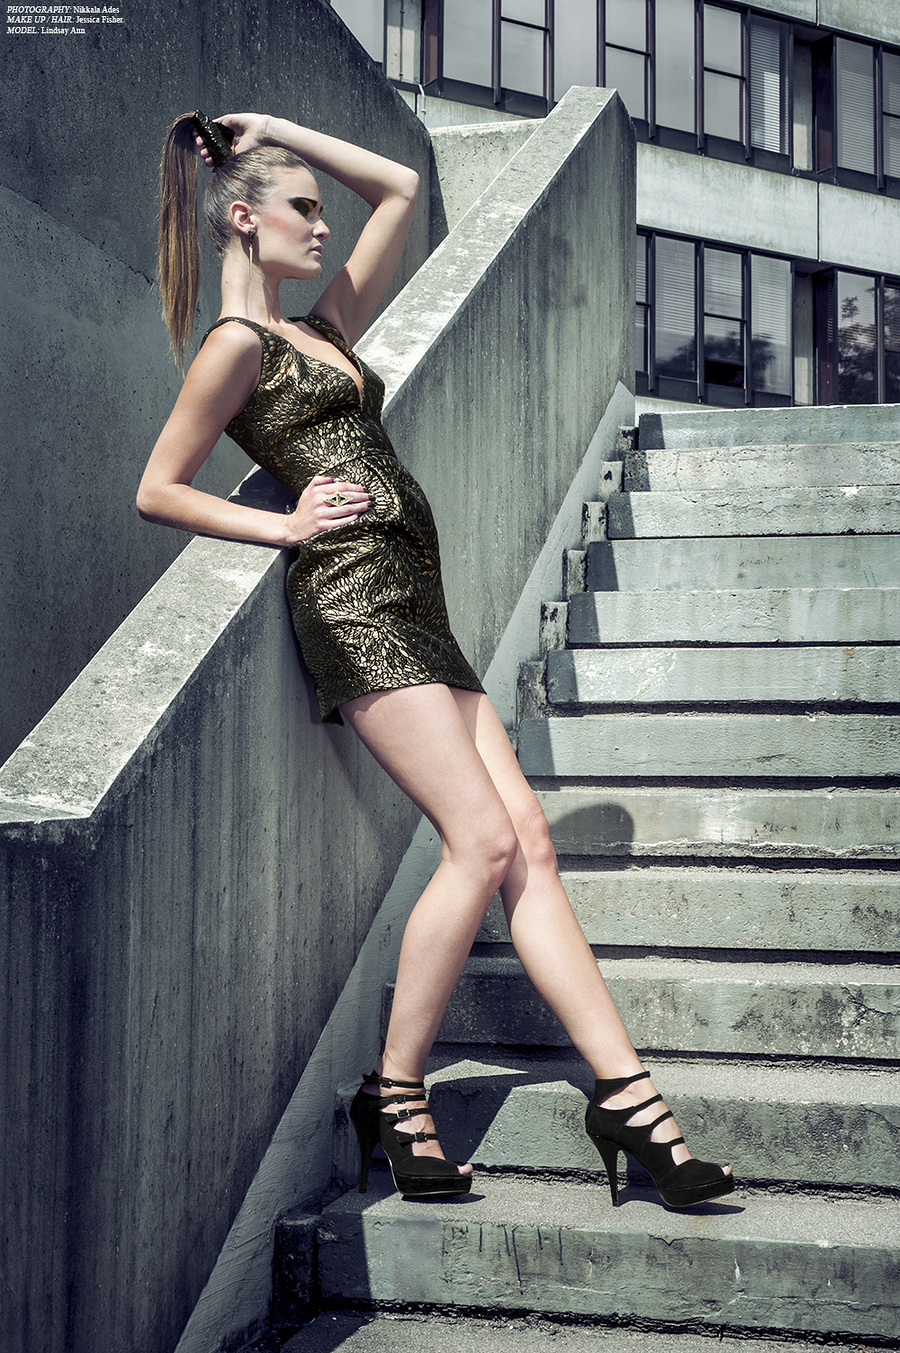 Project:Black and Gold / Photography by NIKKALA ADES PHOTOGRAPHY, Model Lindsey / Uploaded 20th July 2013 @ 08:23 PM